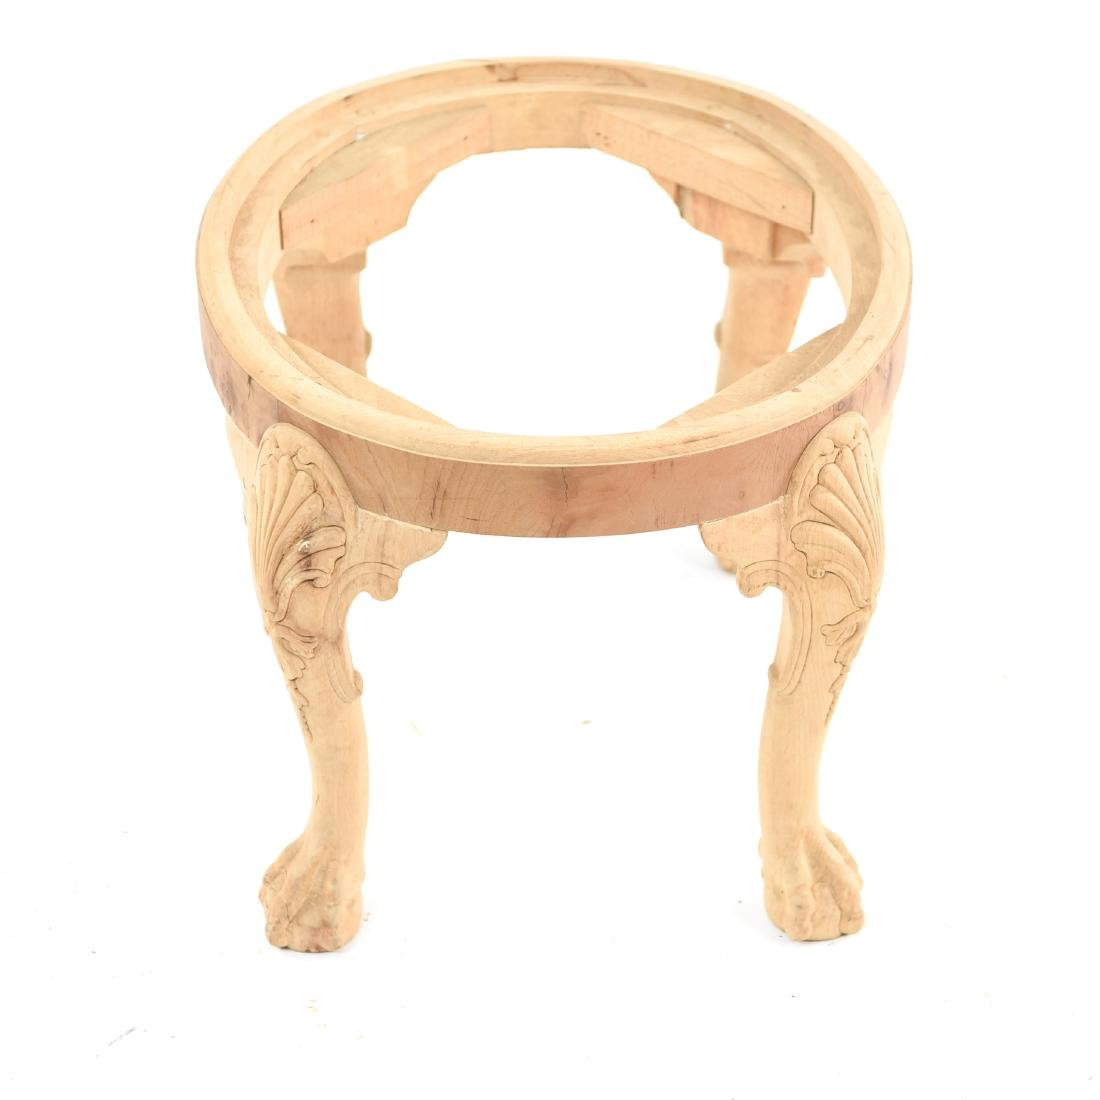 BALL AND CLAW FOOT CARVED SEAT OR BENCH BASE - 6